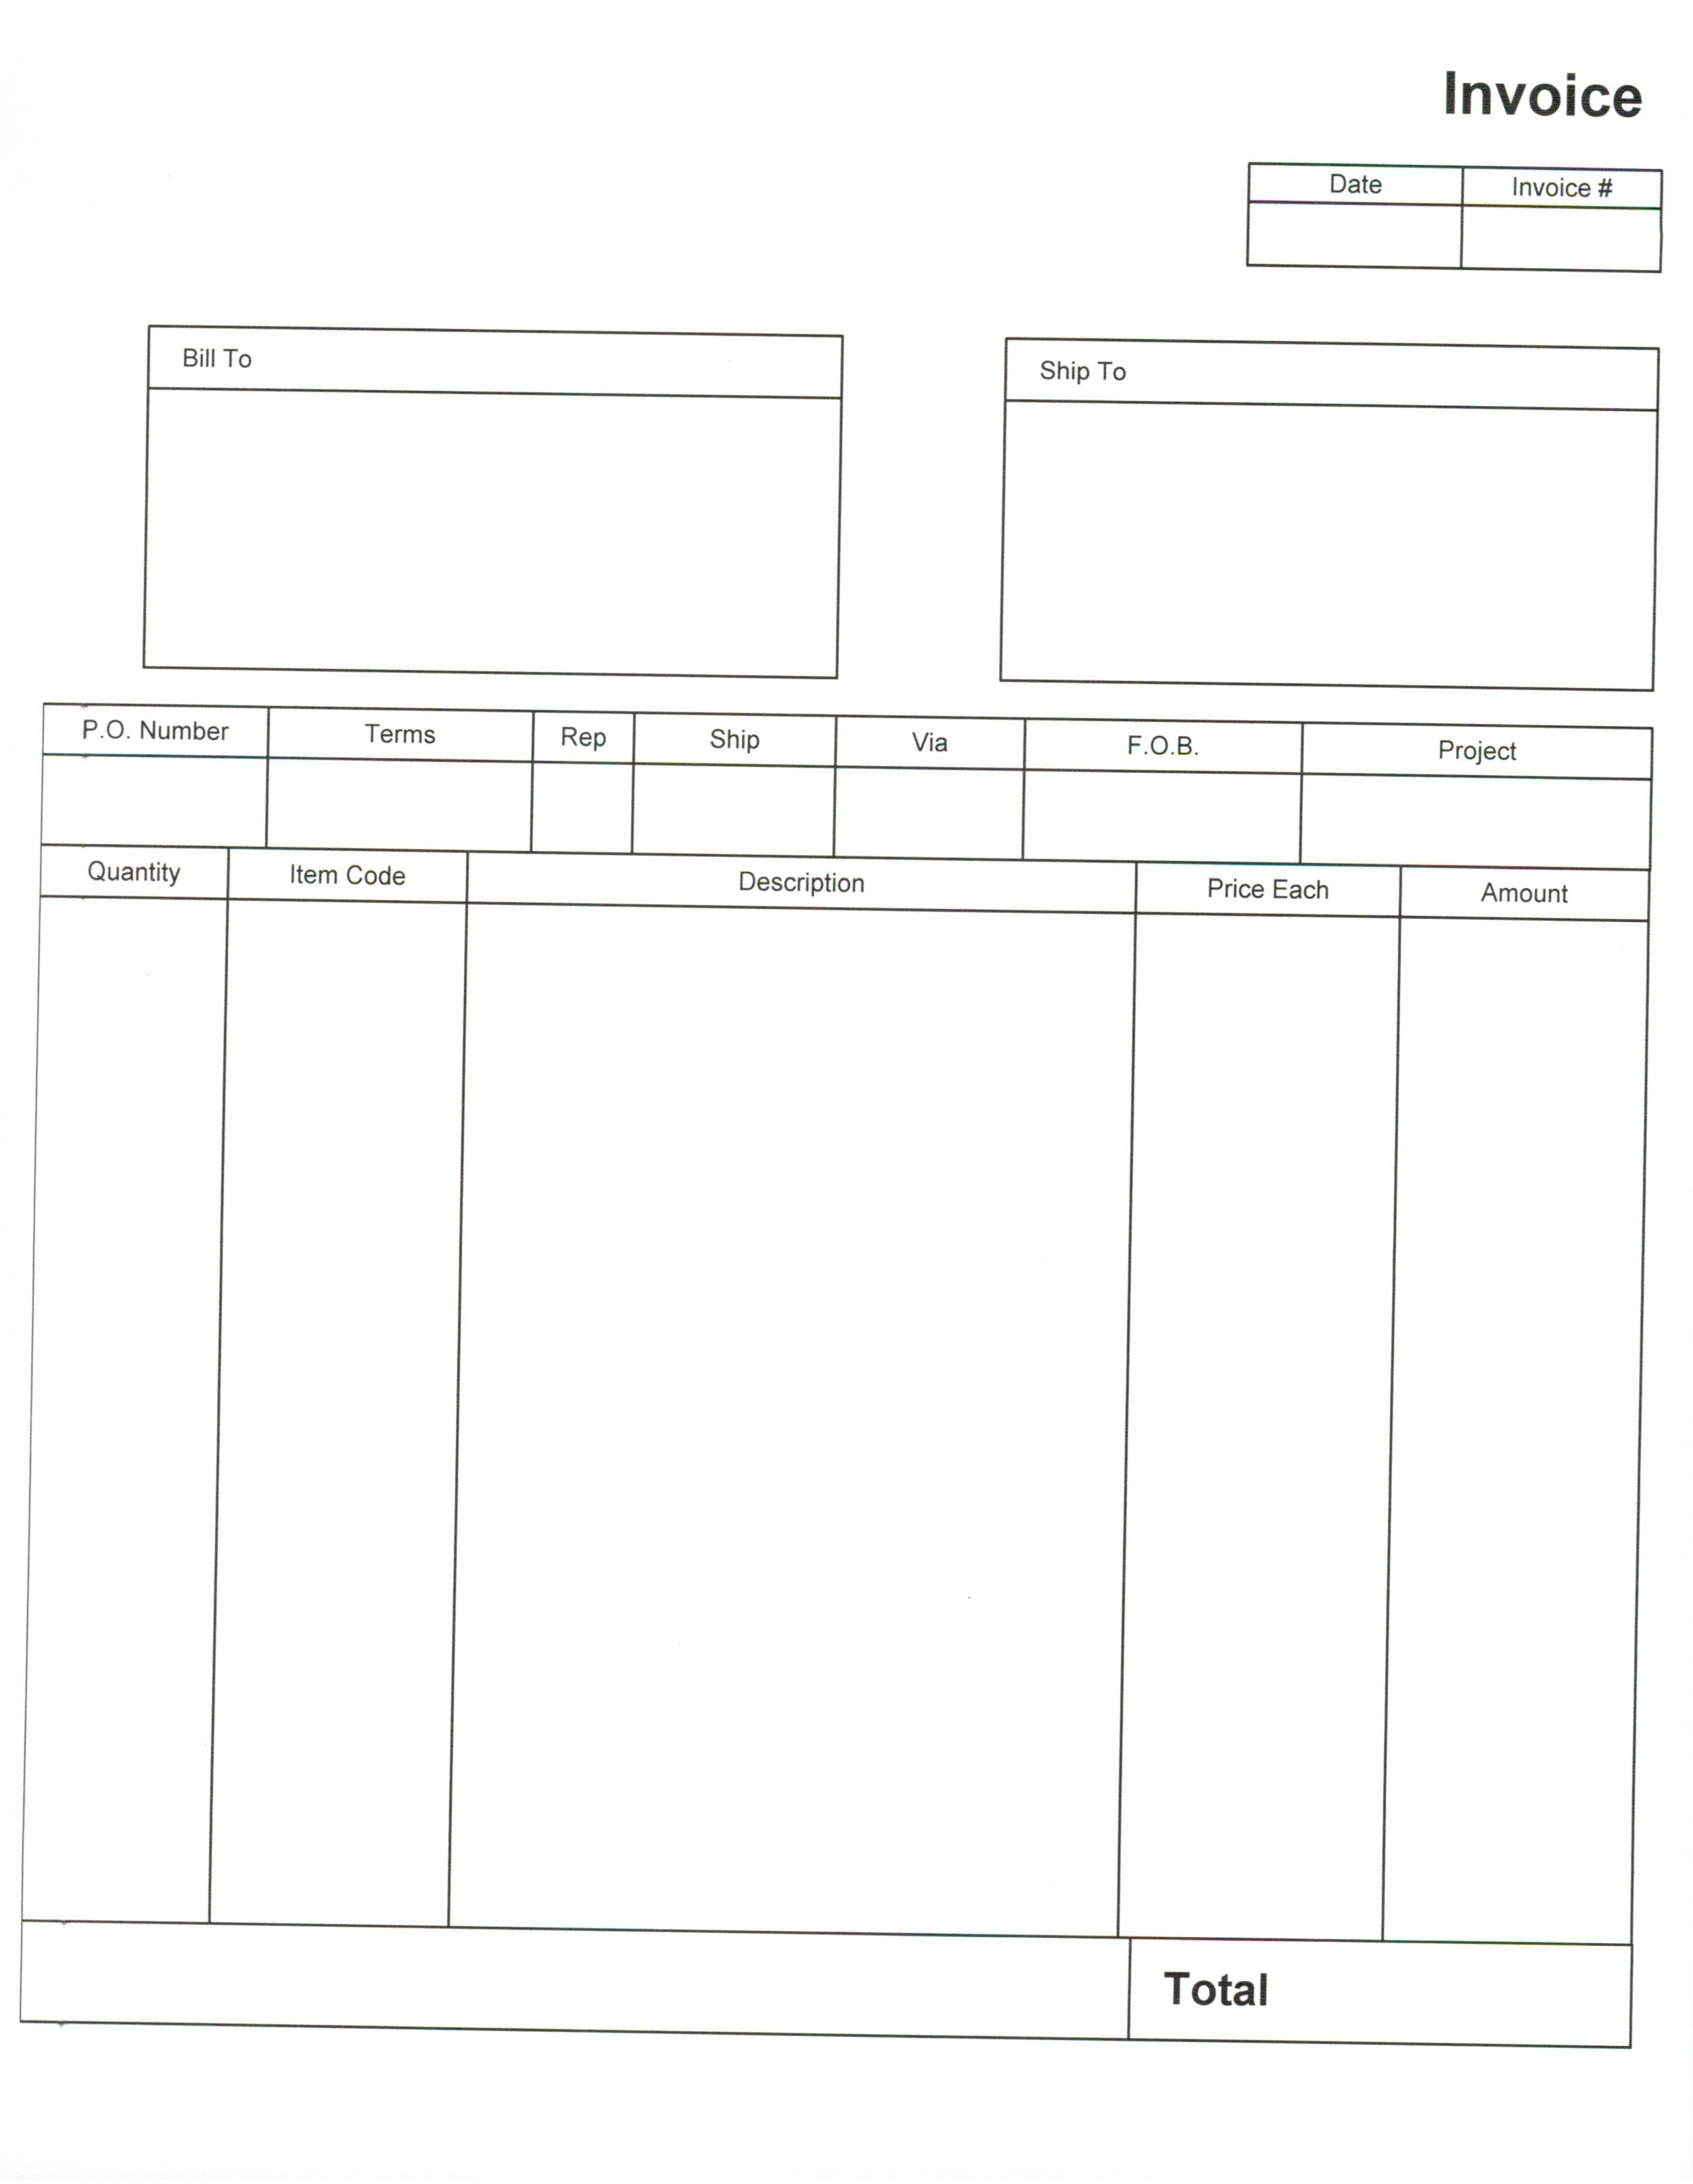 Blank Invoice Form Pdf Invoice Template Ideas - Free invoice template pdf